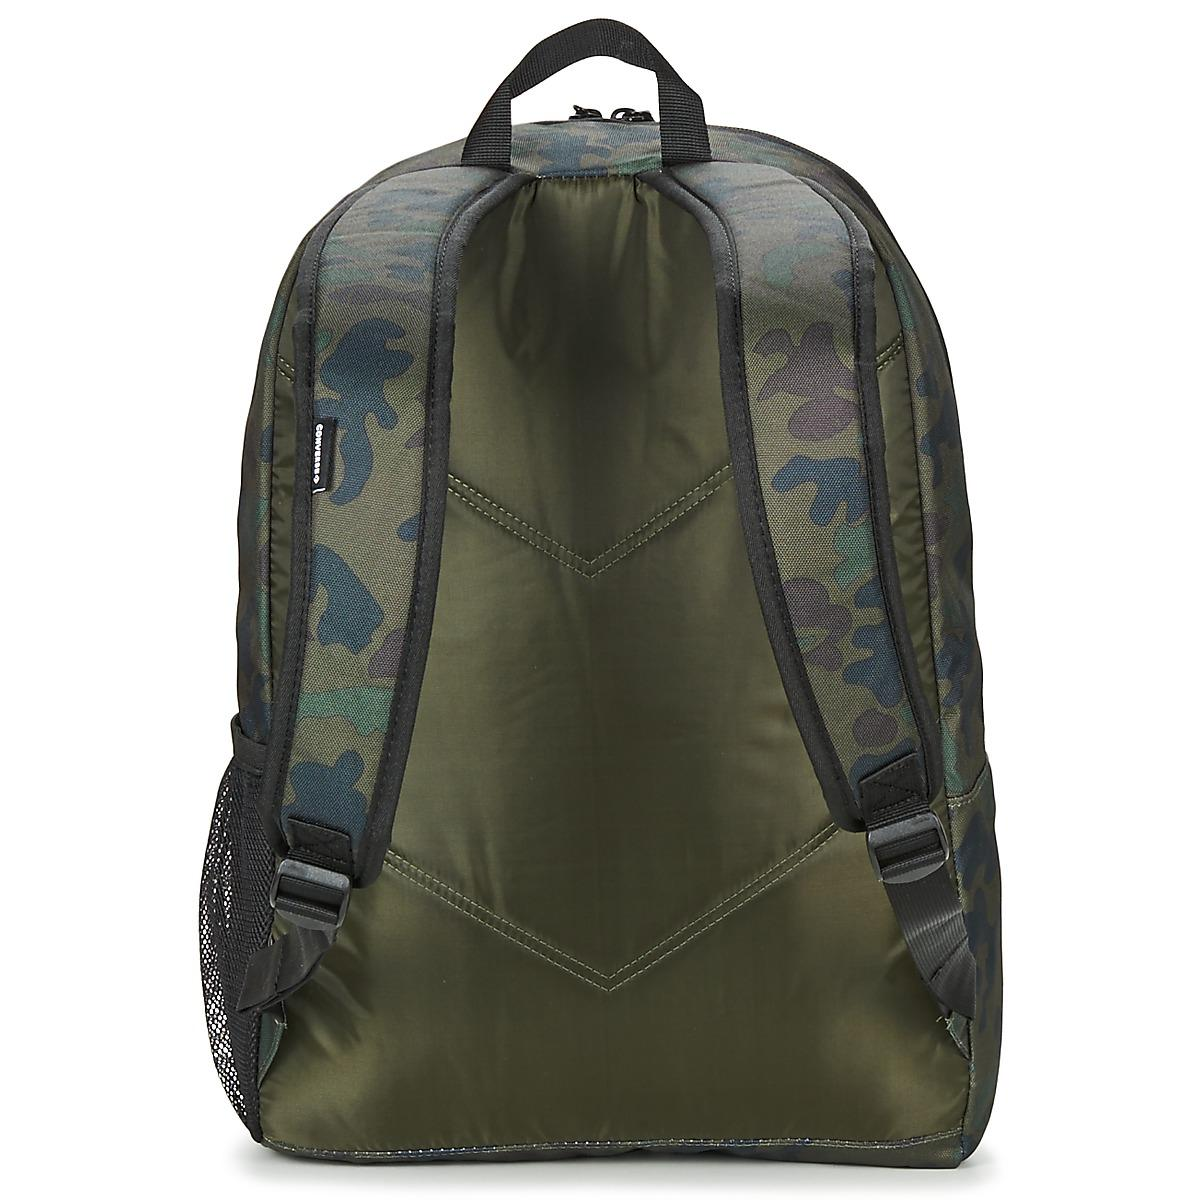 05739cdf3c9 Converse Speed Backpack Star Chevron Women s Backpack In Green in ...